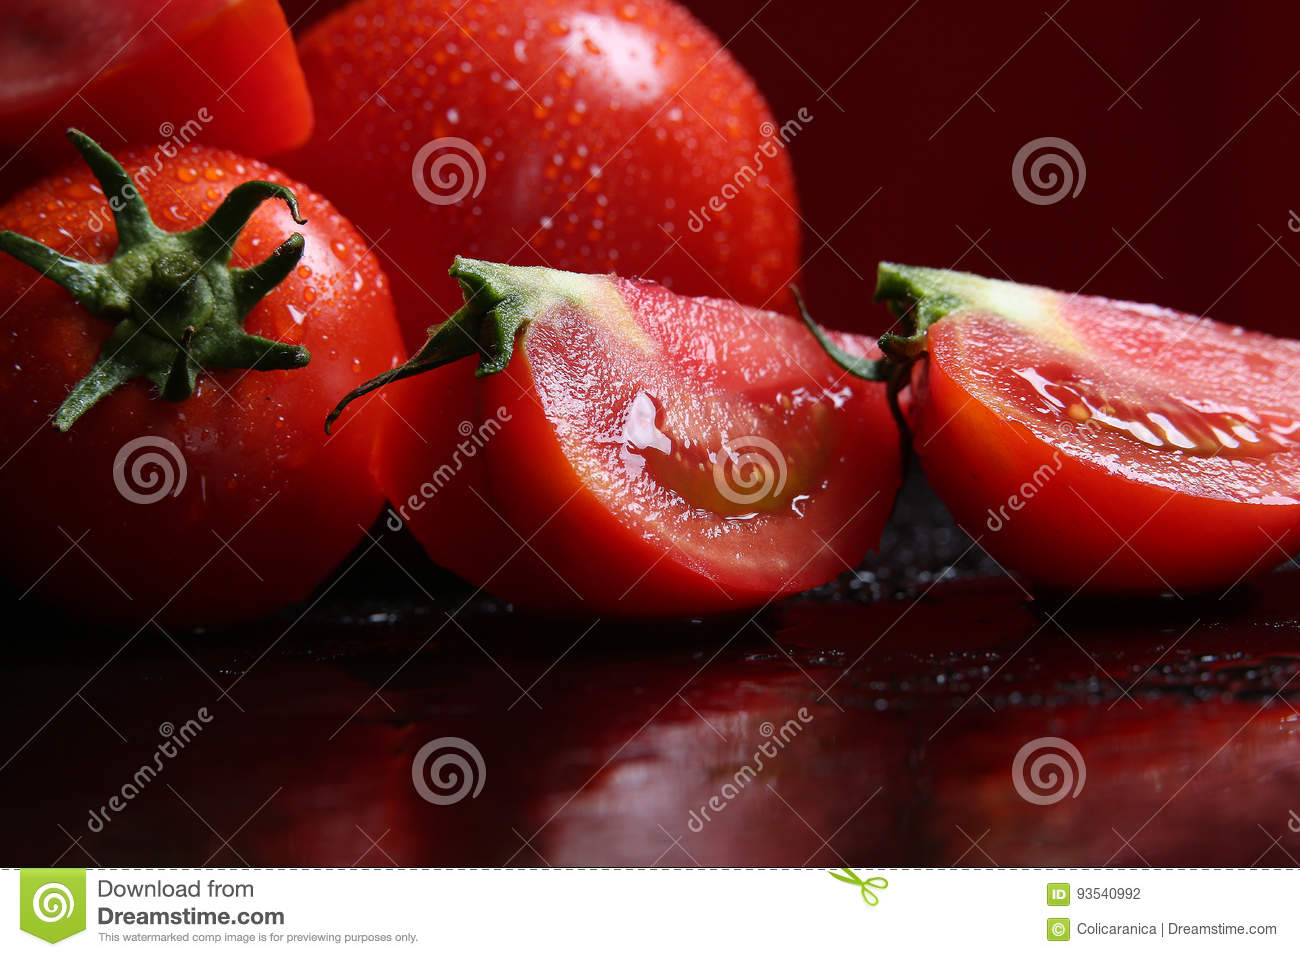 Tomatoes under water drops, red background